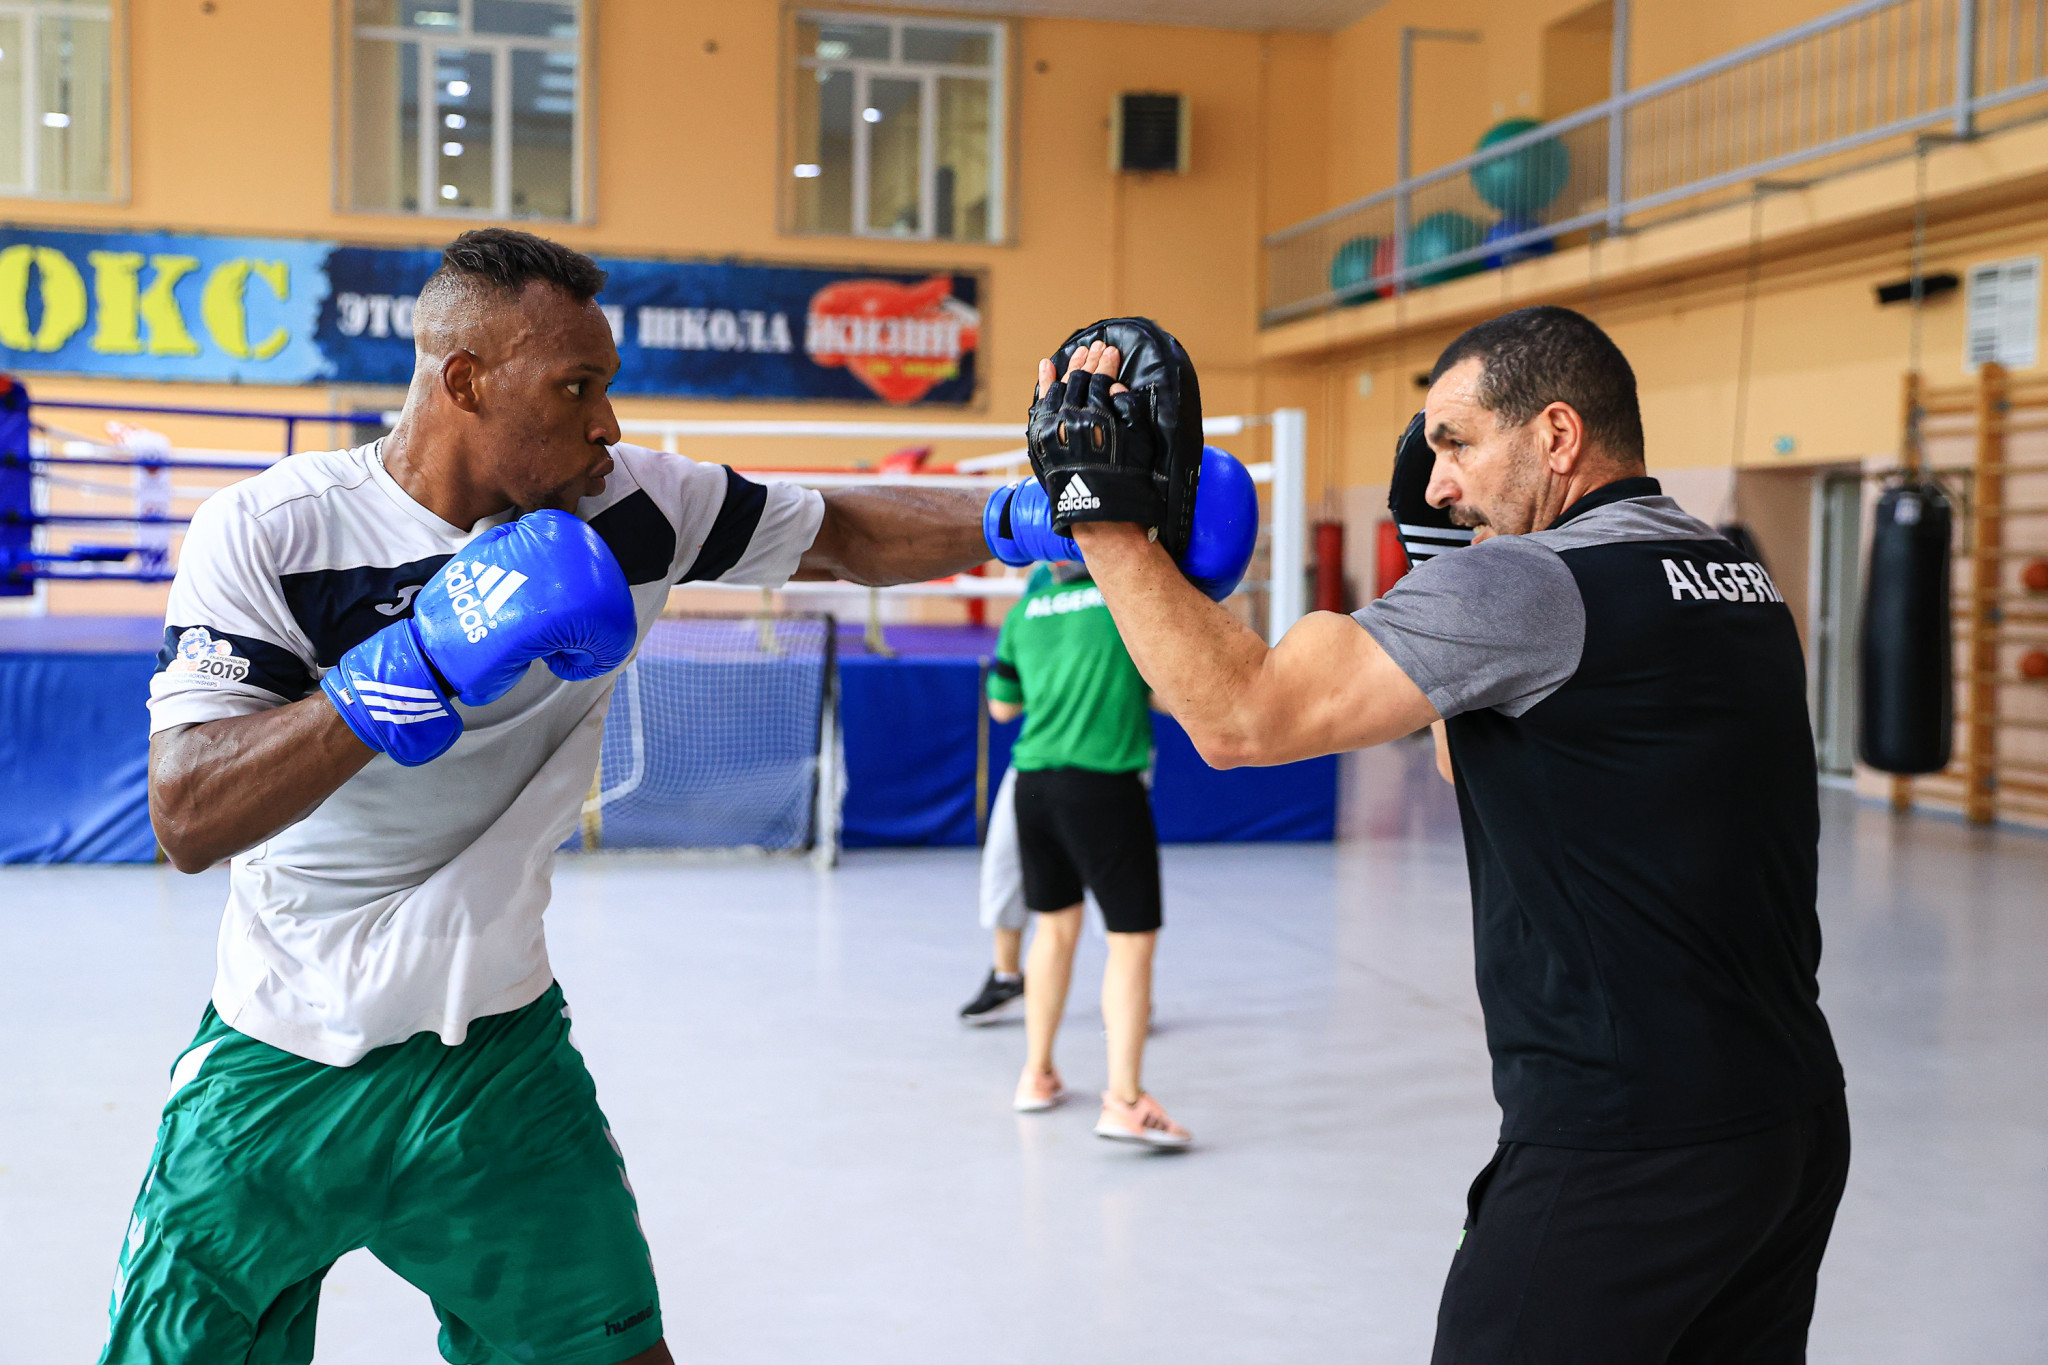 The training camp was organised to help boxers prepare for international tournaments ©AIBA